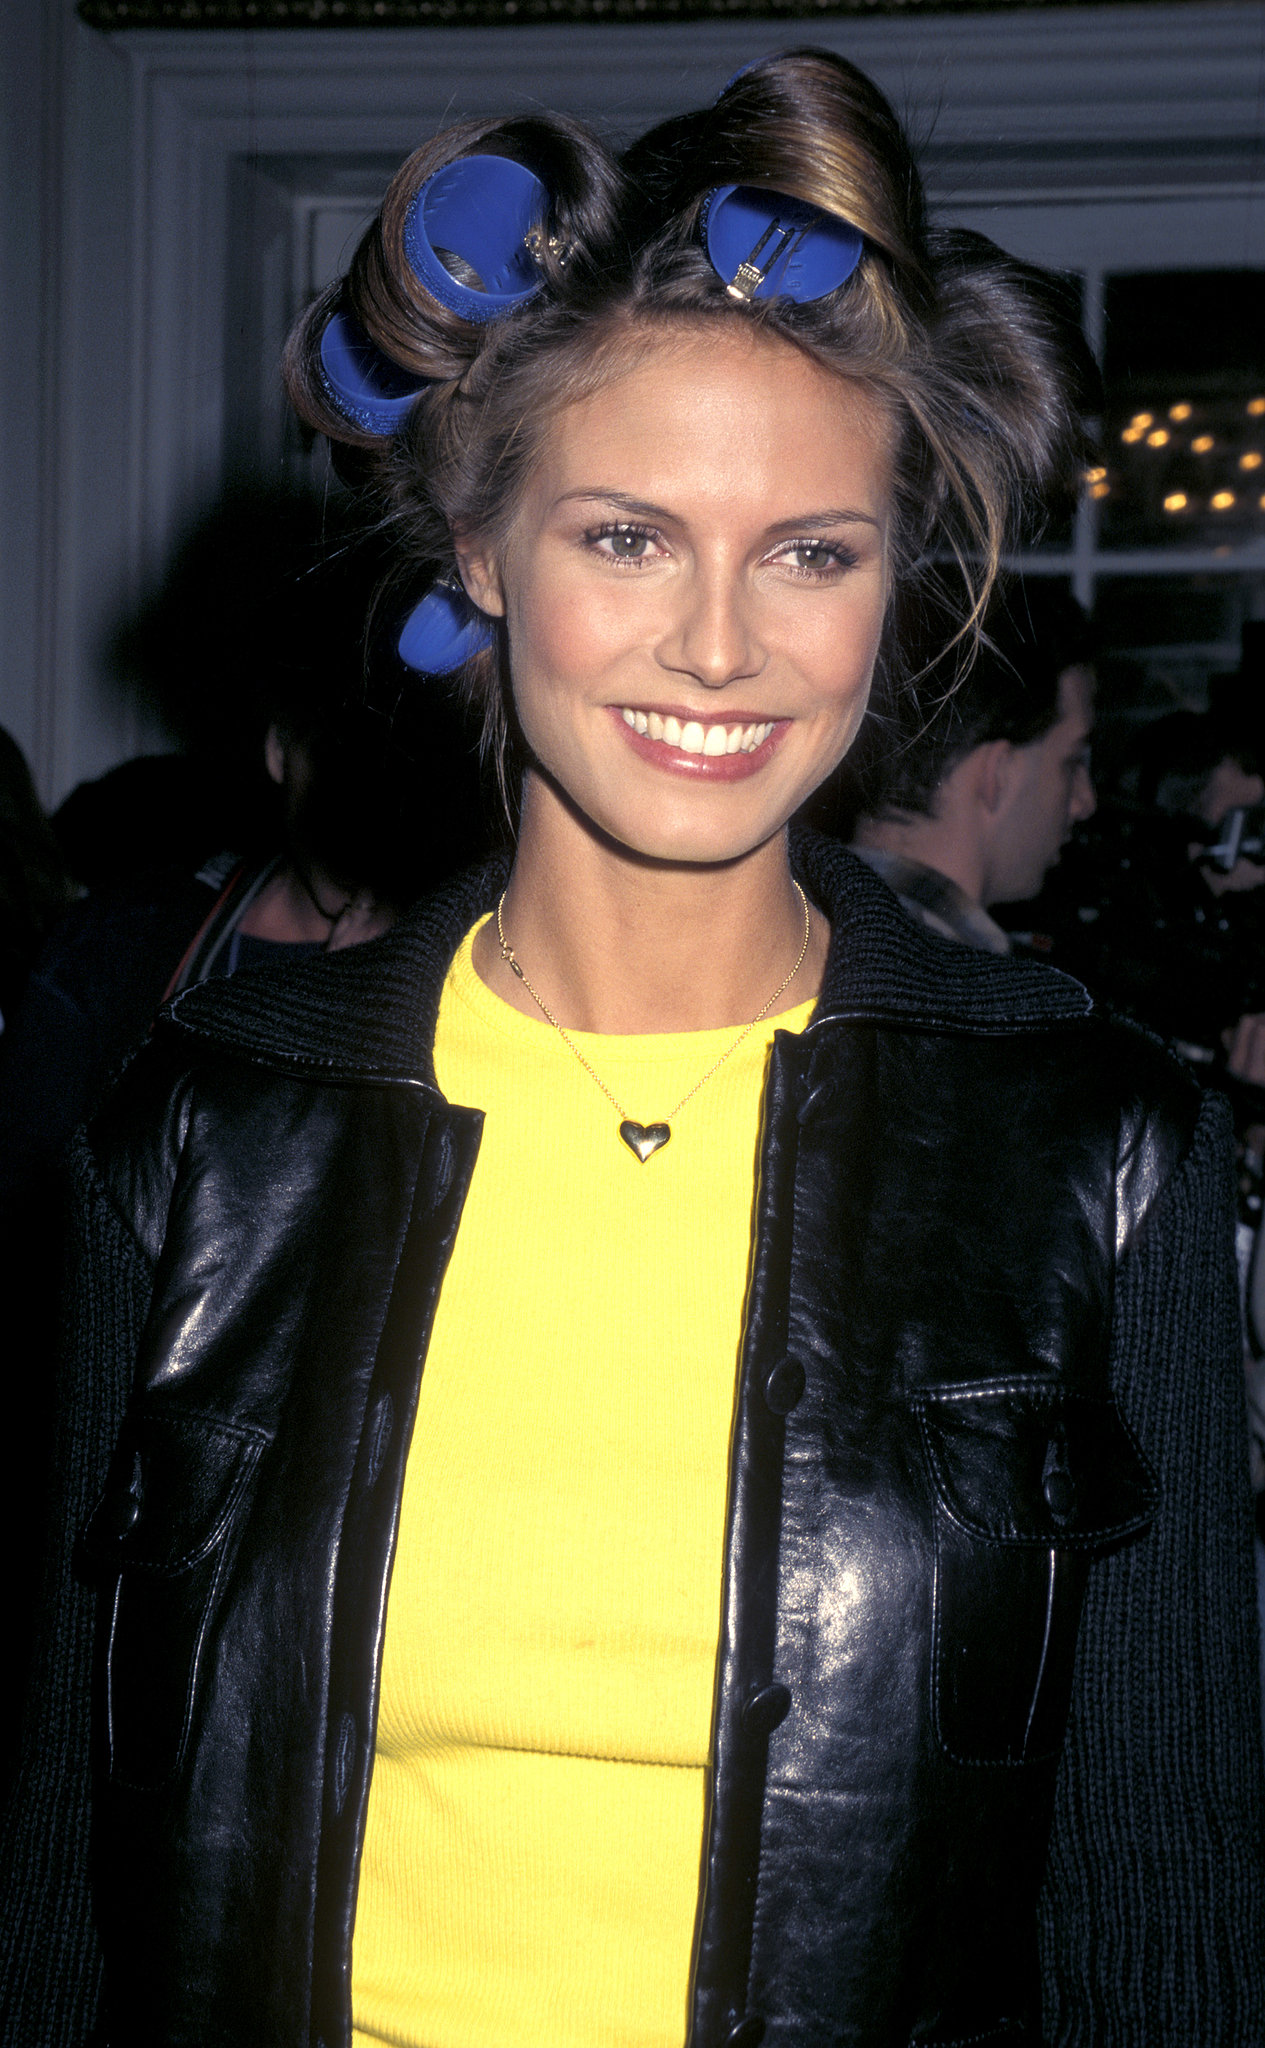 Heidi Klum was done up in rollers backstage at the 1997 show.